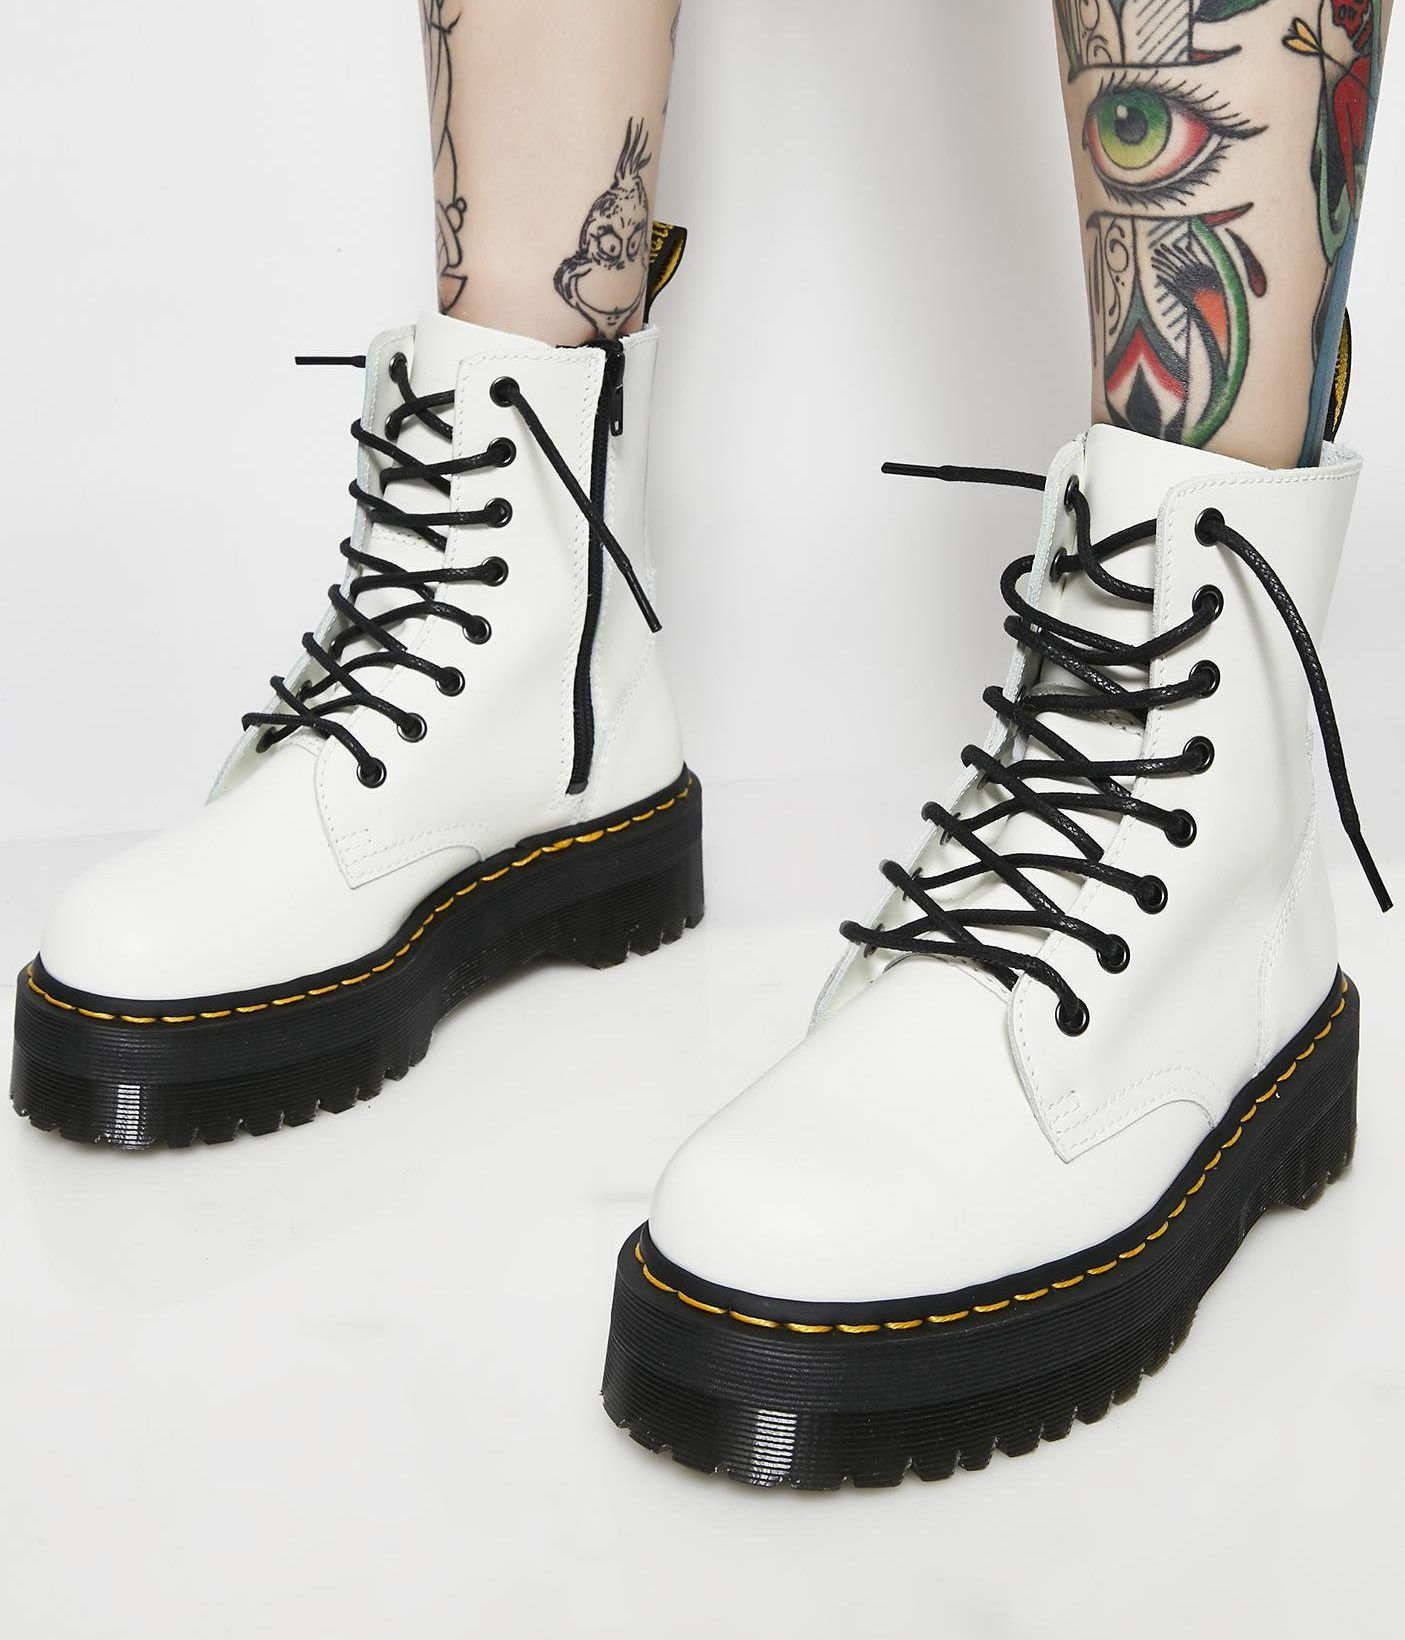 b28295071cc3a6 Dr. Martens White Jadon 8 Eye Boots  Drmartensstyle  womenofedm   festivalfashion  boots  white  whiteboots  boots